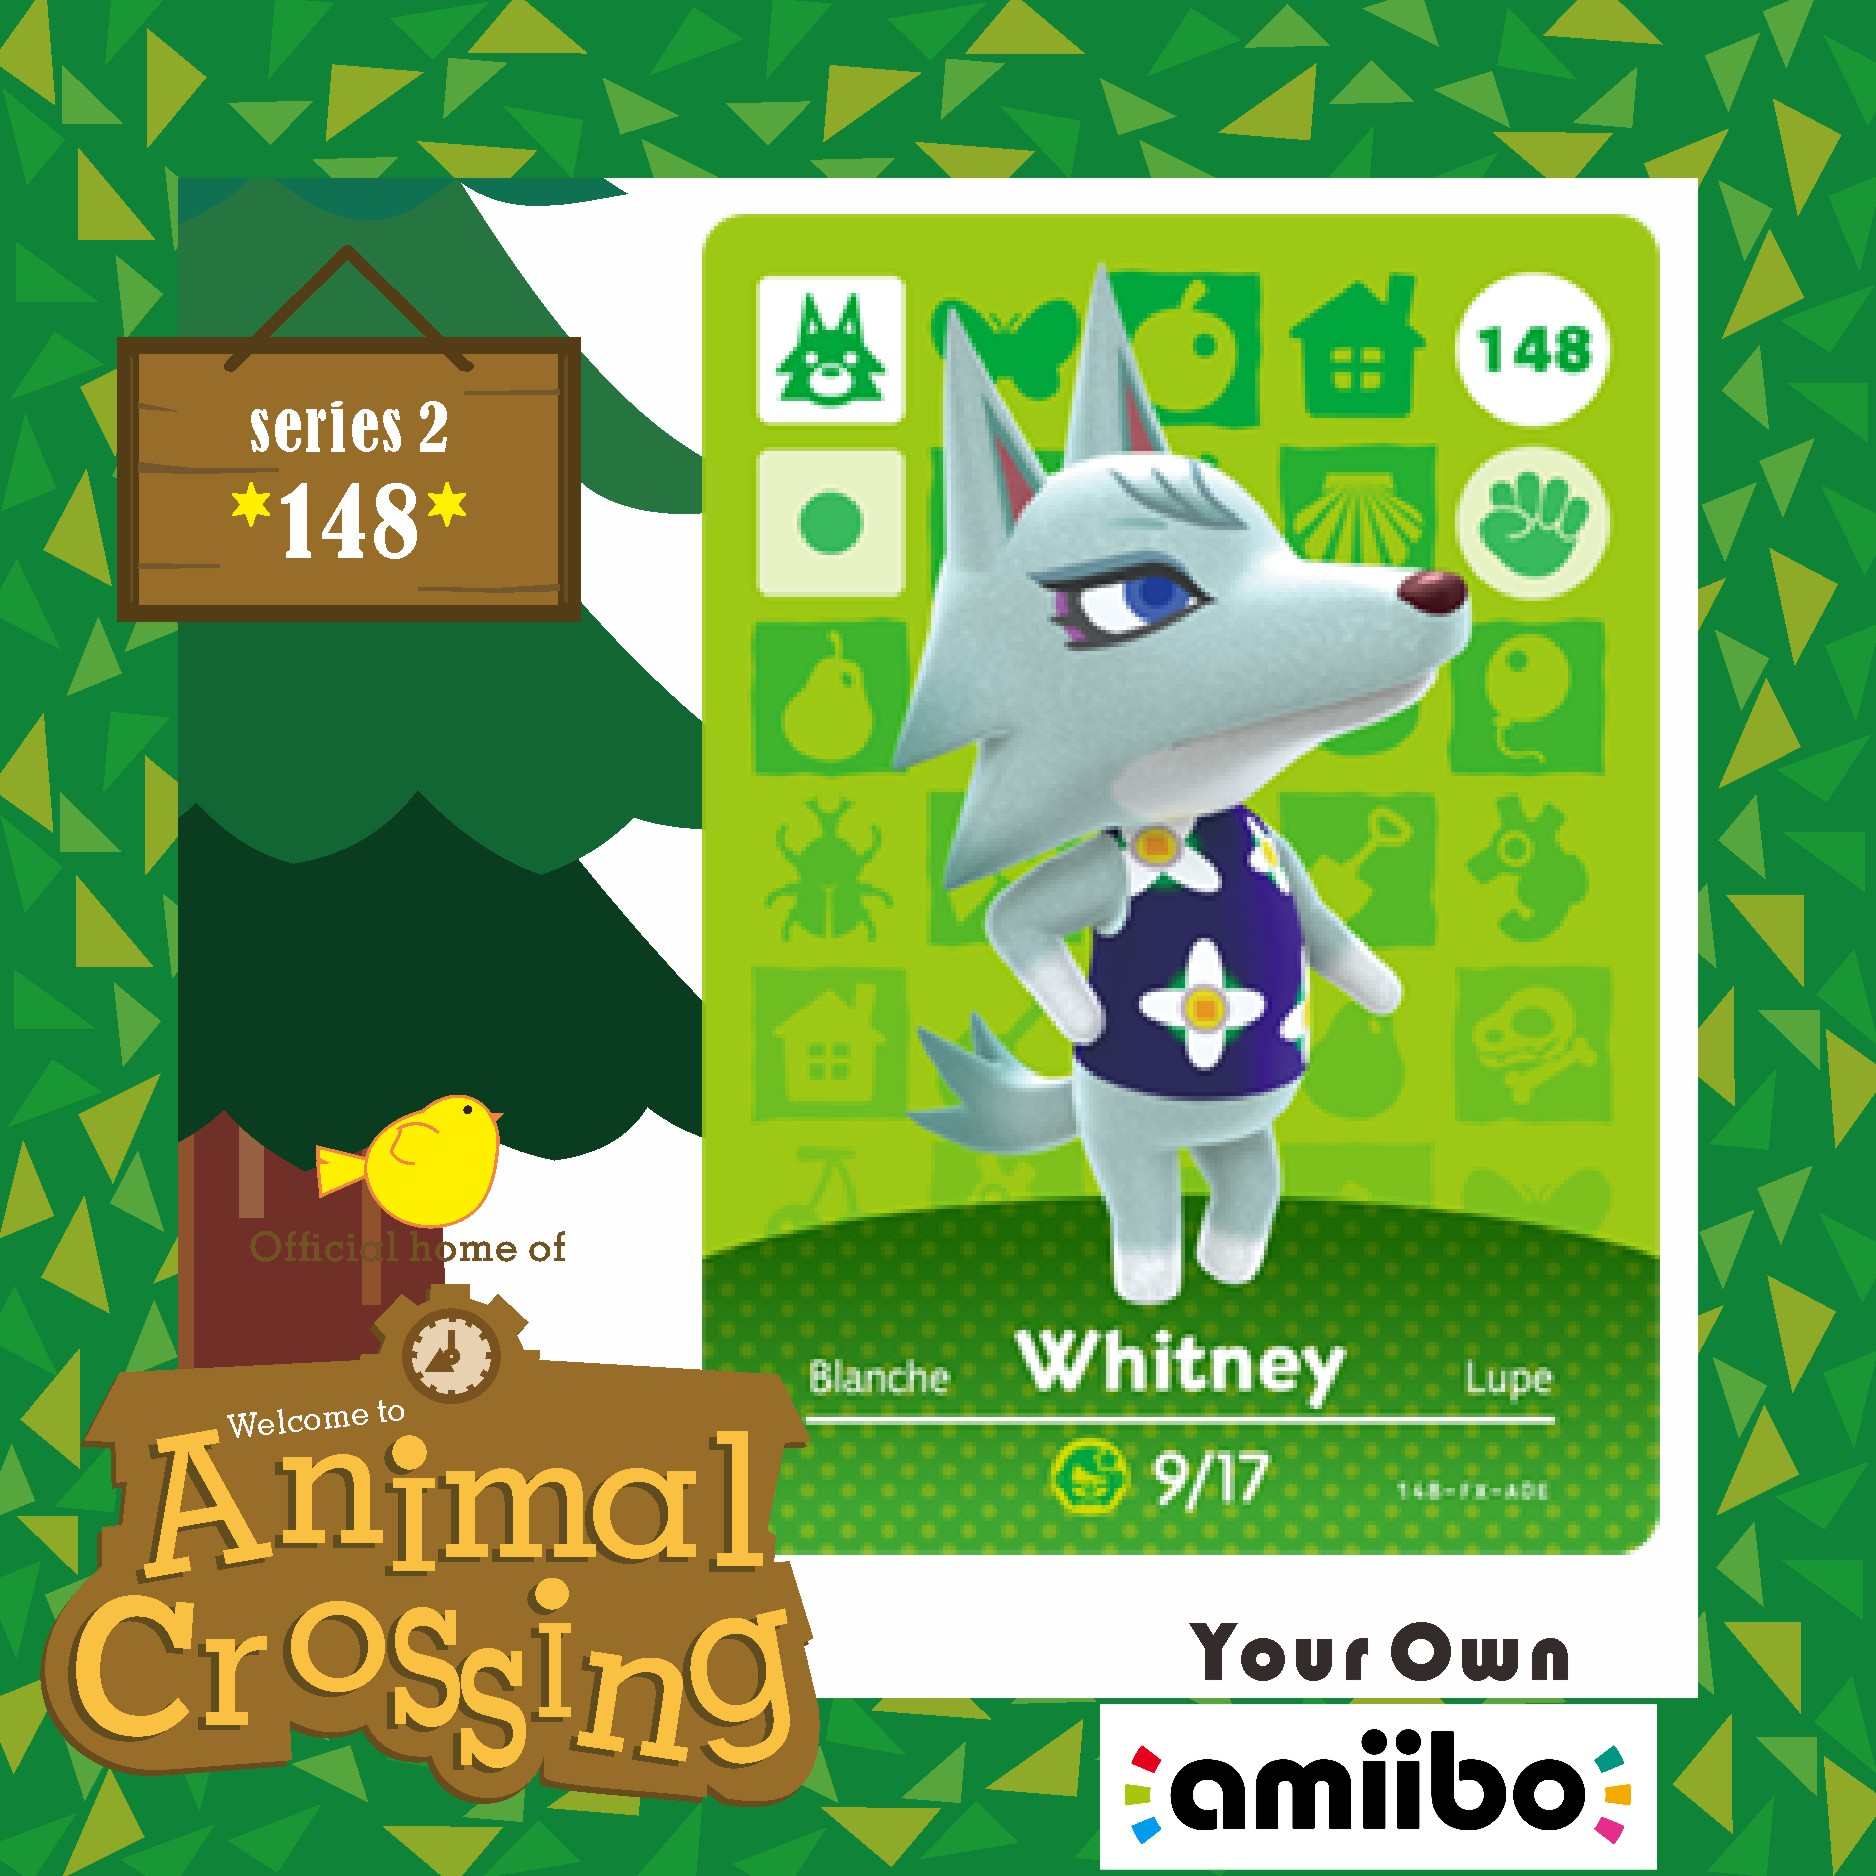 Amiibo Animal Crossing Amiibo Card 148 Amiibo Animal Crossing Amiibo Card Whitney Villager Whitney 148 Series Season Set  2